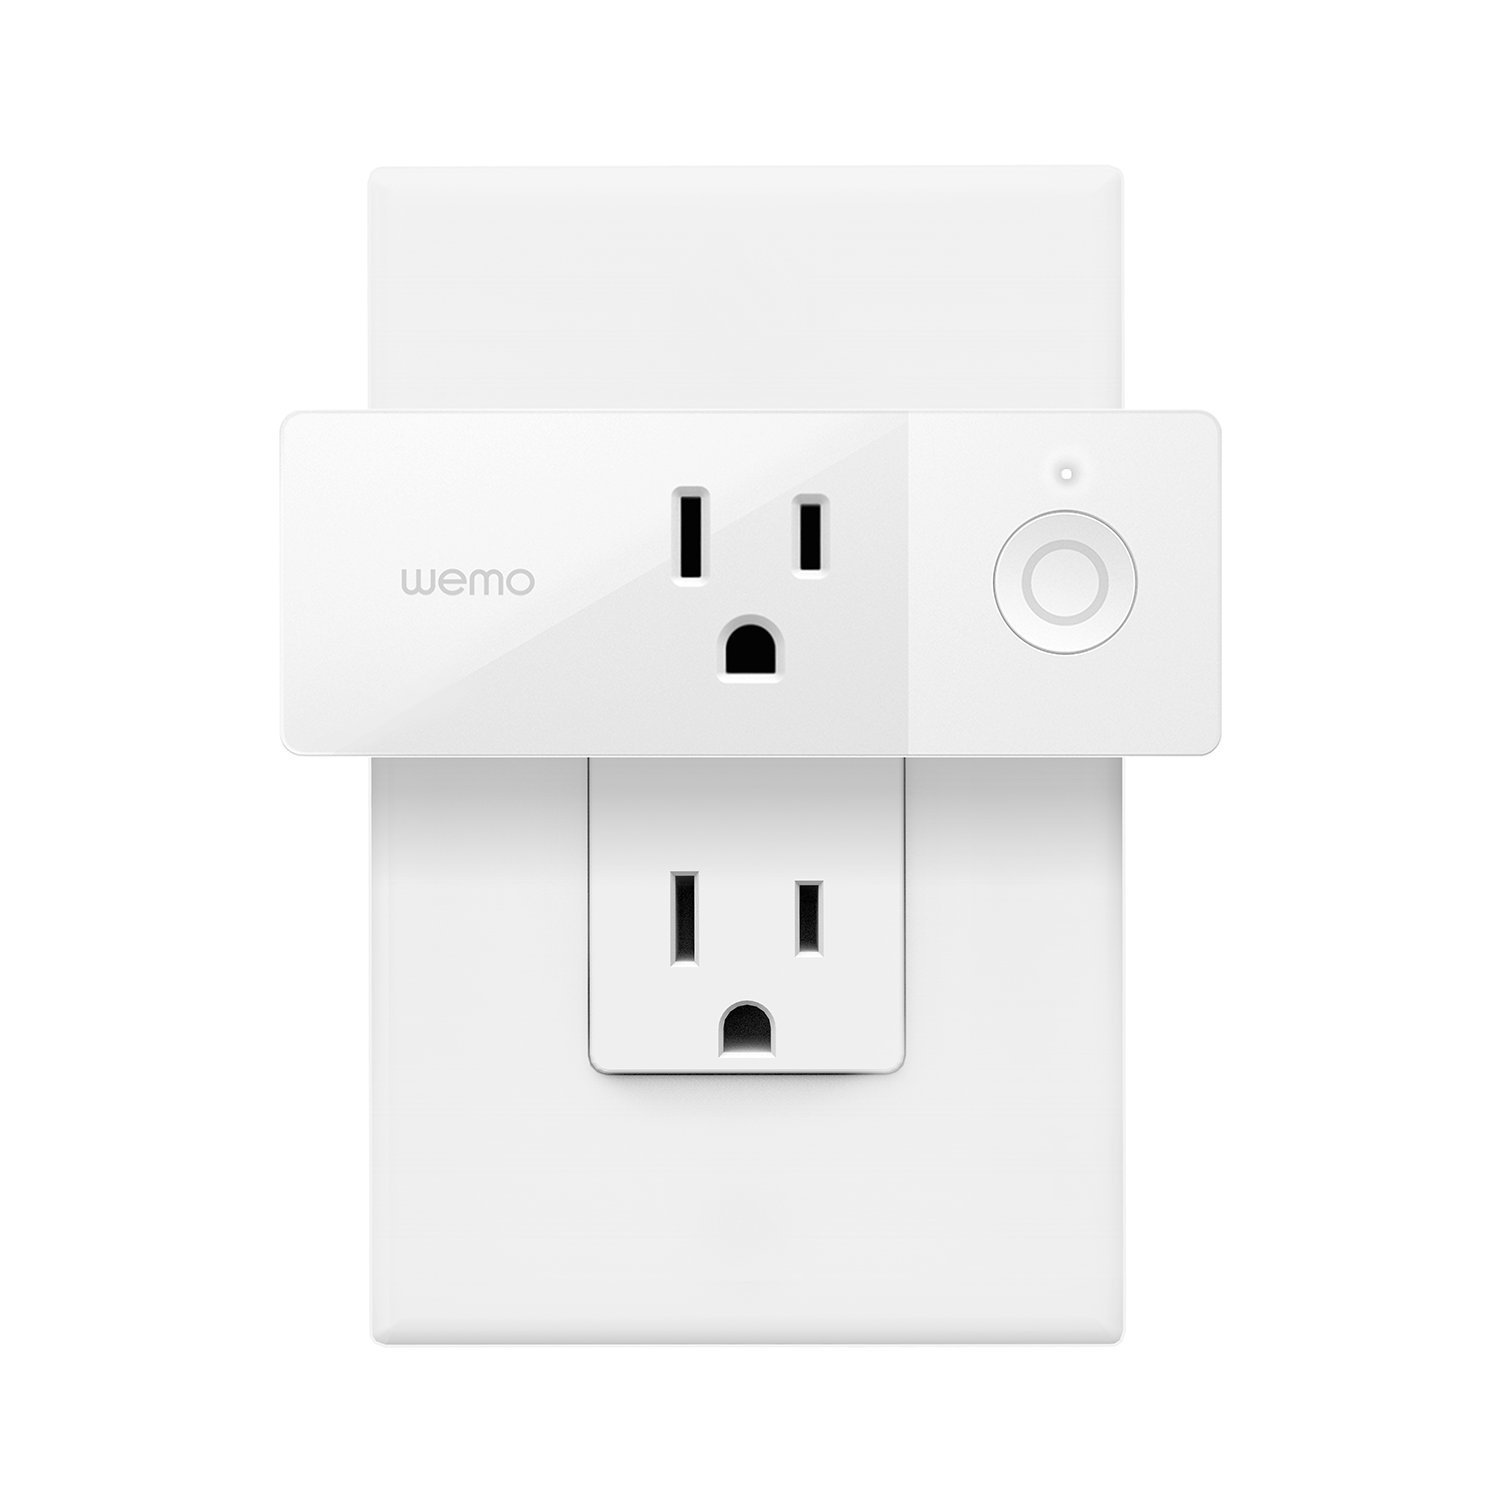 Wemo Mini Smart Plug, Wi-Fi Enabled, Compatible with Alexa and Google Assistant (Certified Refurbished)